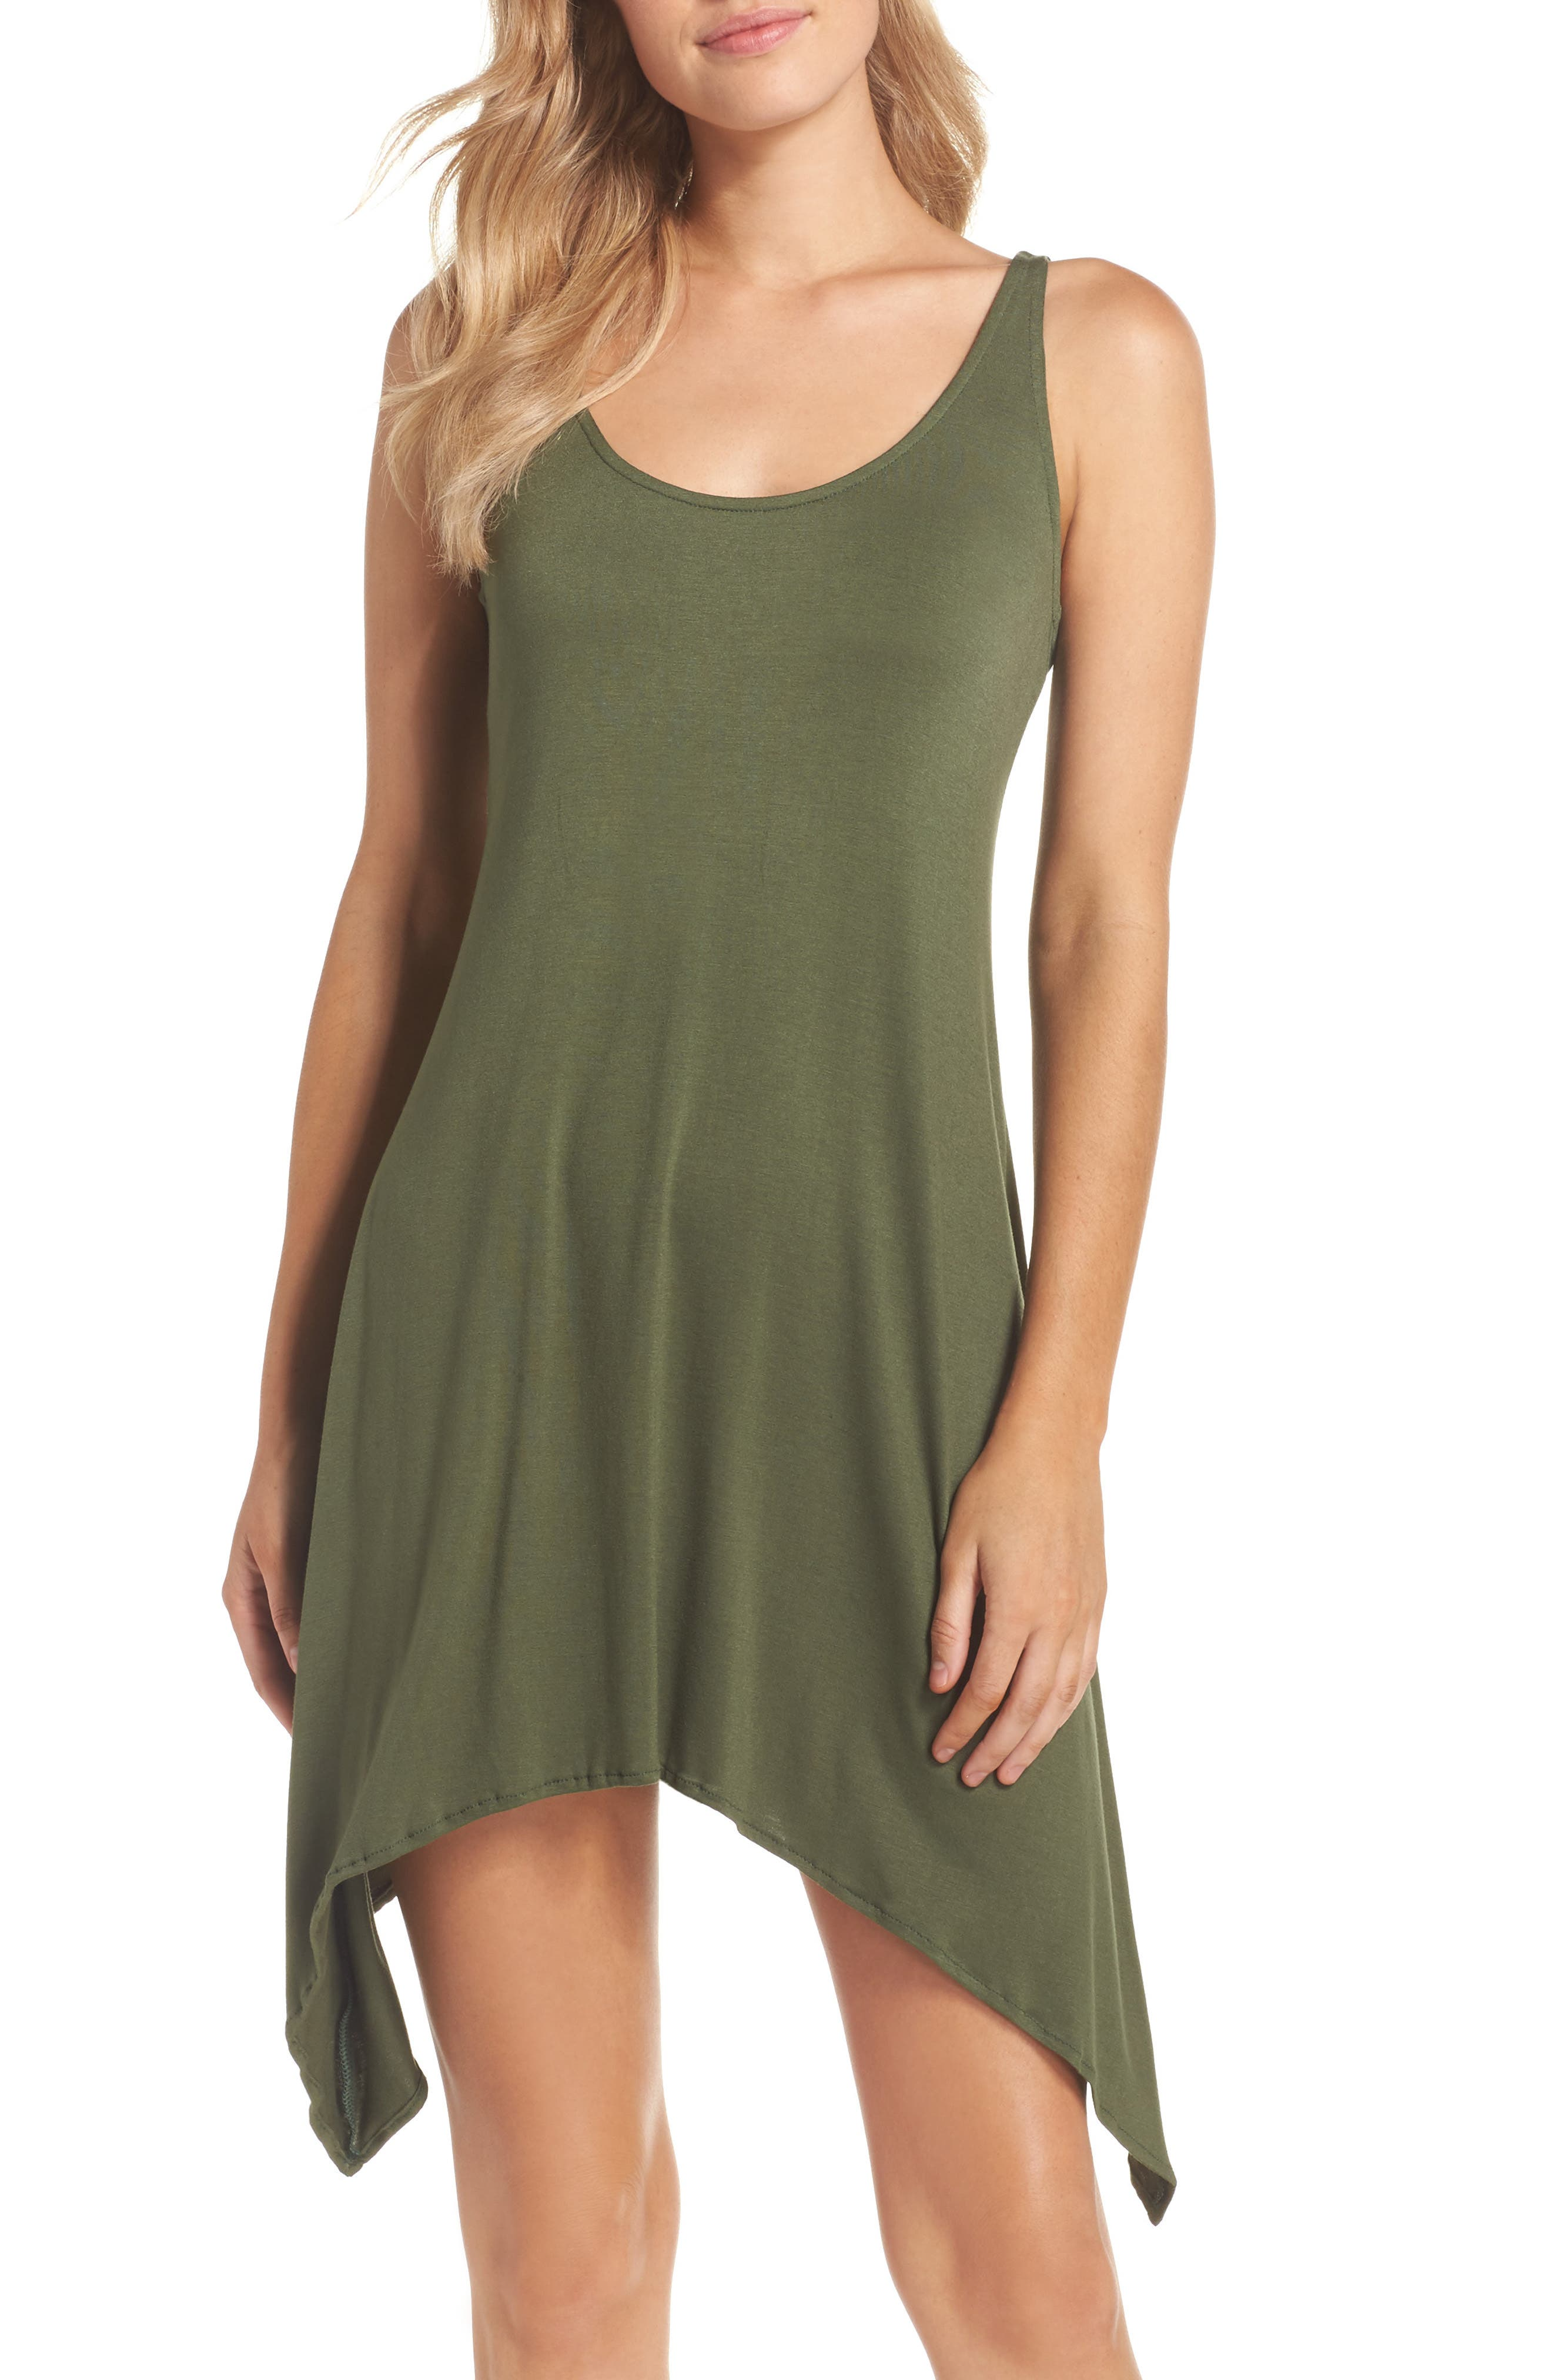 Take Cover Cover-Up Dress,                             Main thumbnail 1, color,                             302